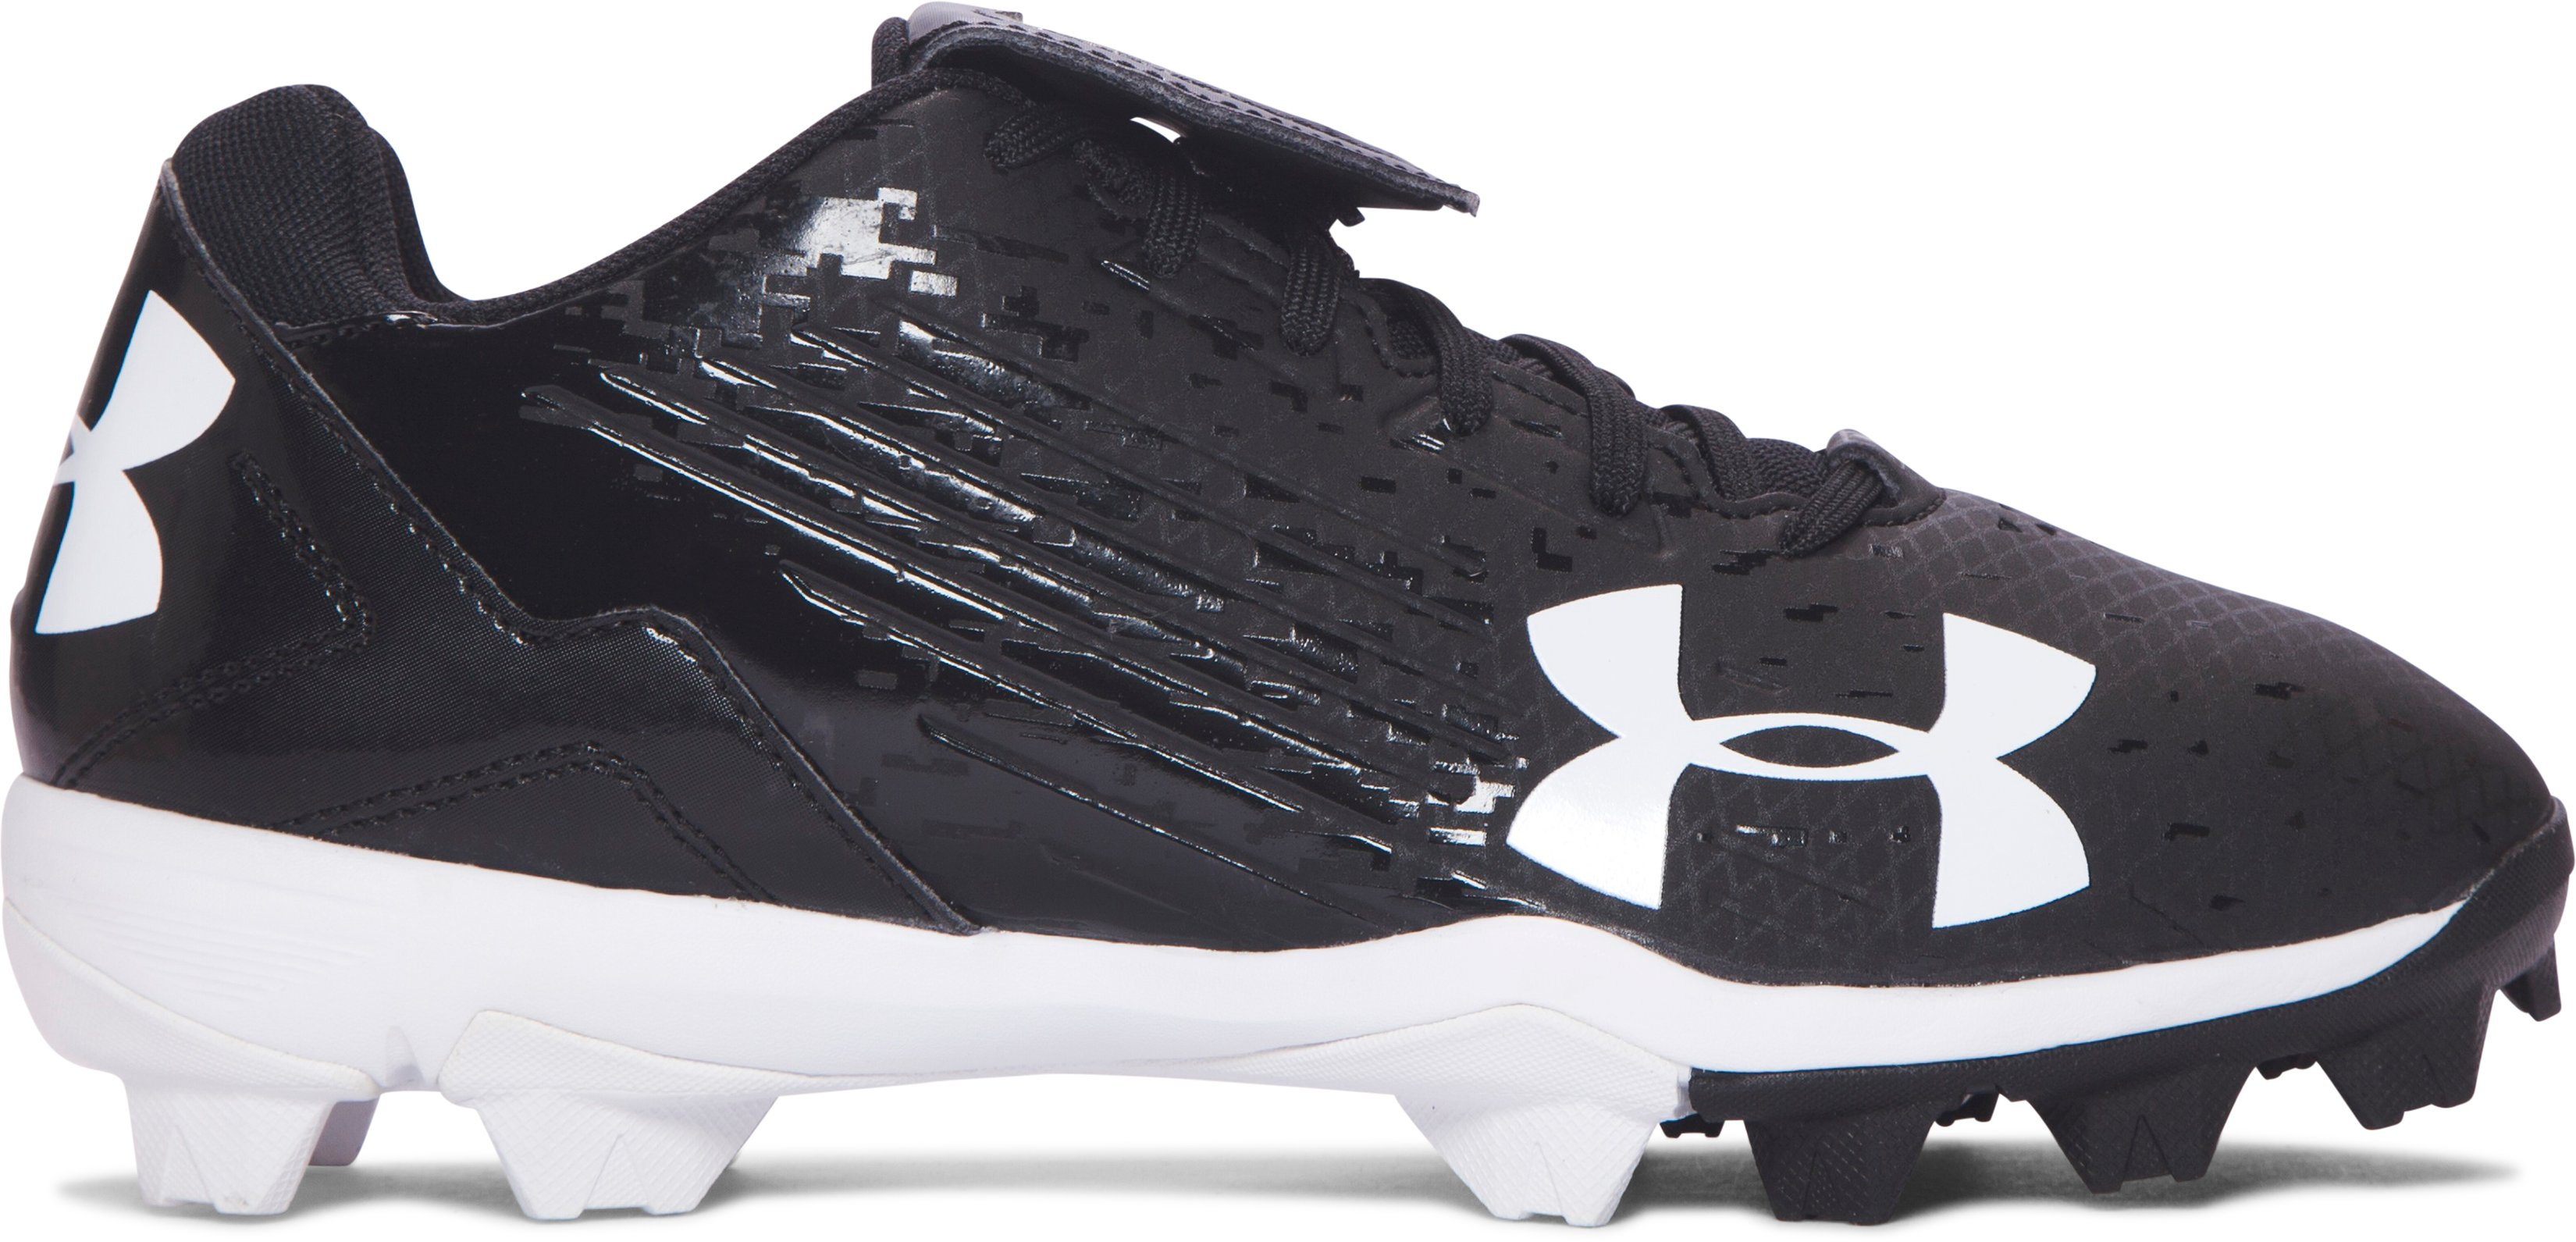 Boys' UA MLB Switch Low Jr. Baseball Cleats, Black , zoomed image